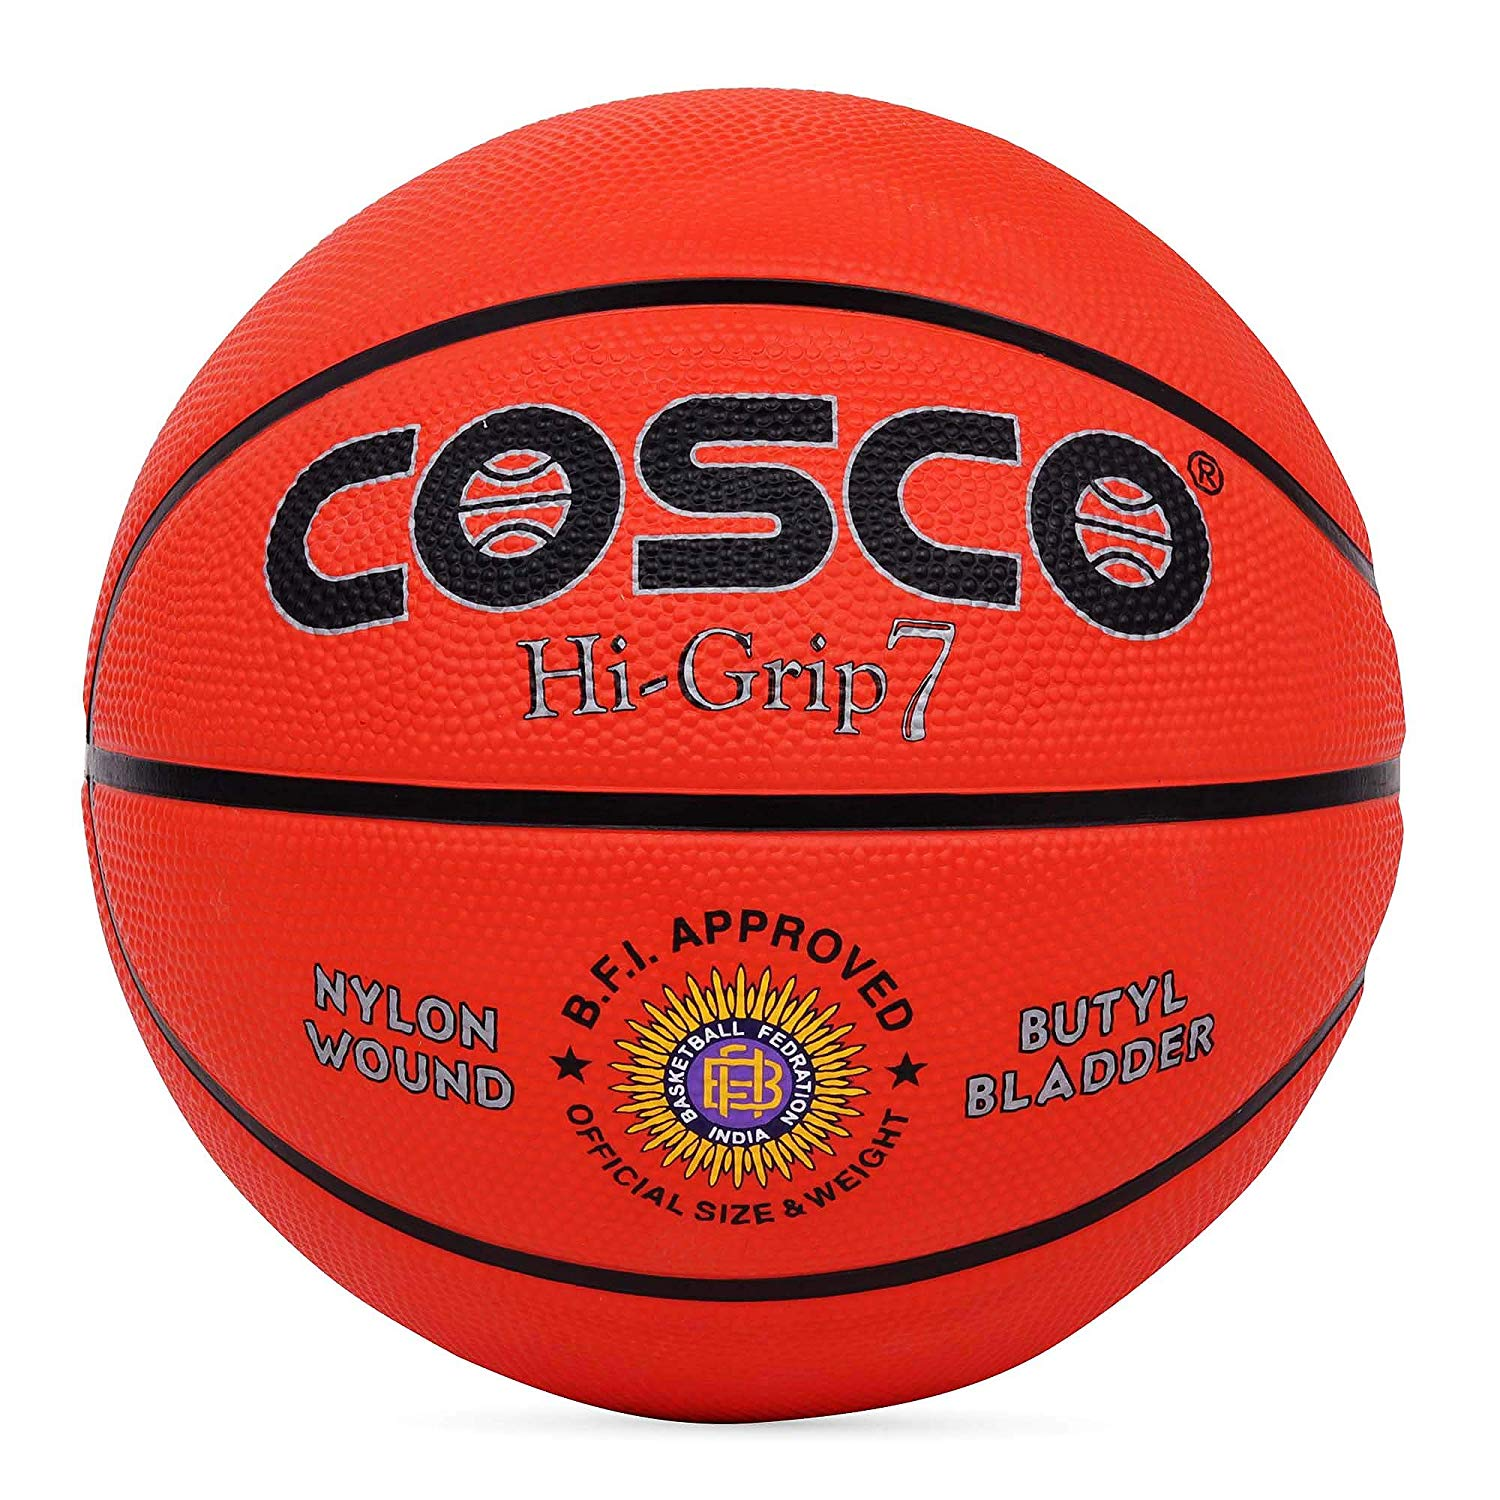 Cosco Hi Grip Basketball - Size 7